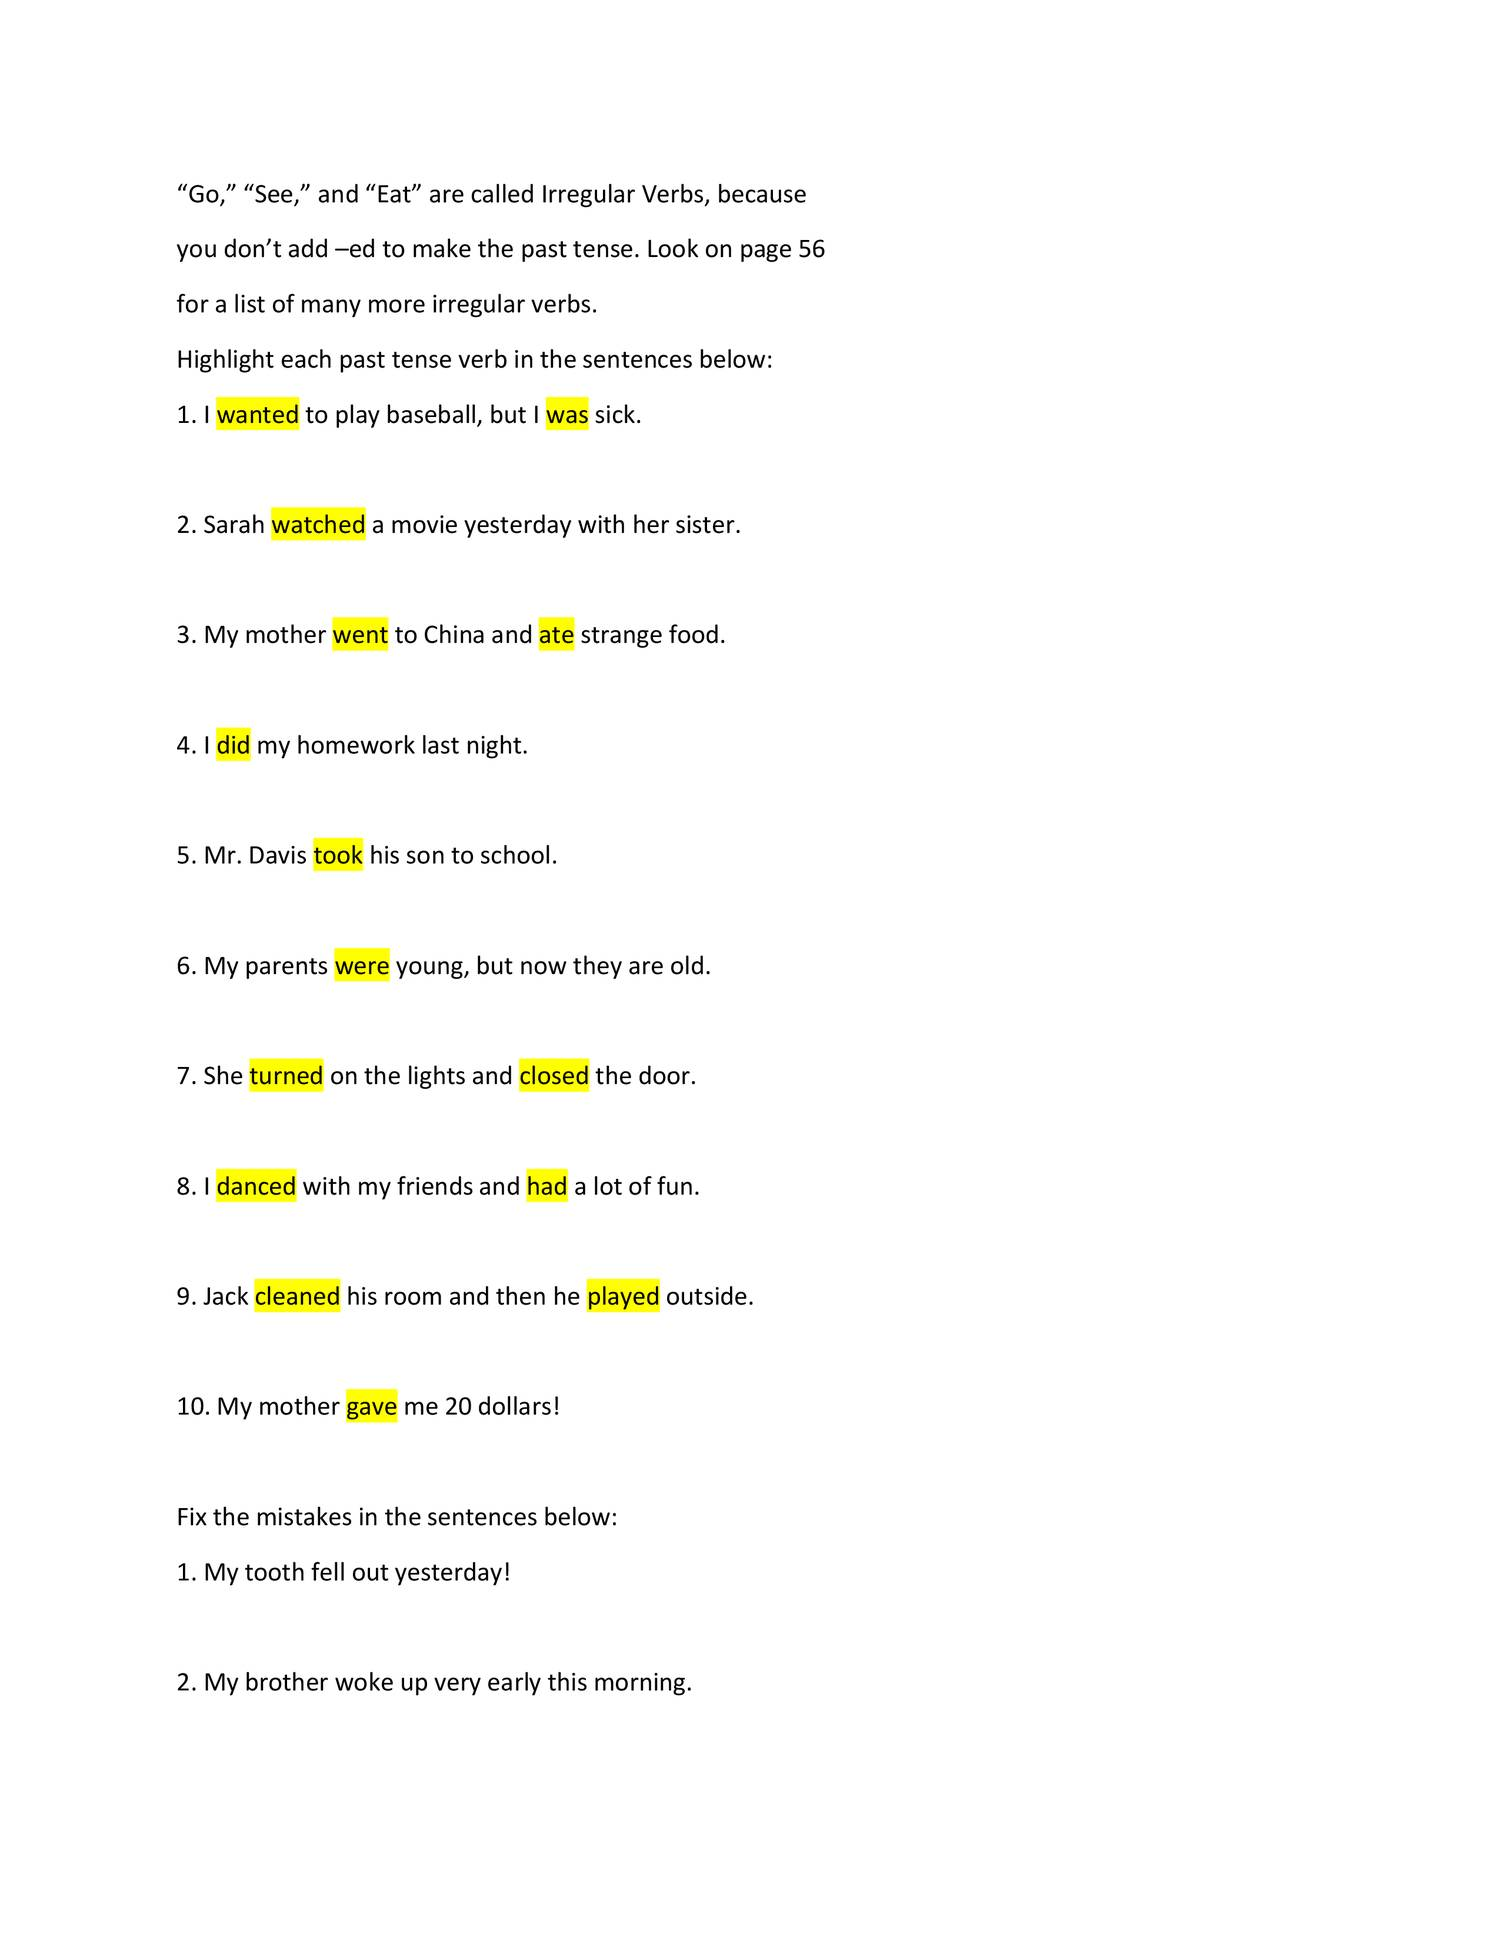 Past tense worksheet-answers.docx | DocDroid